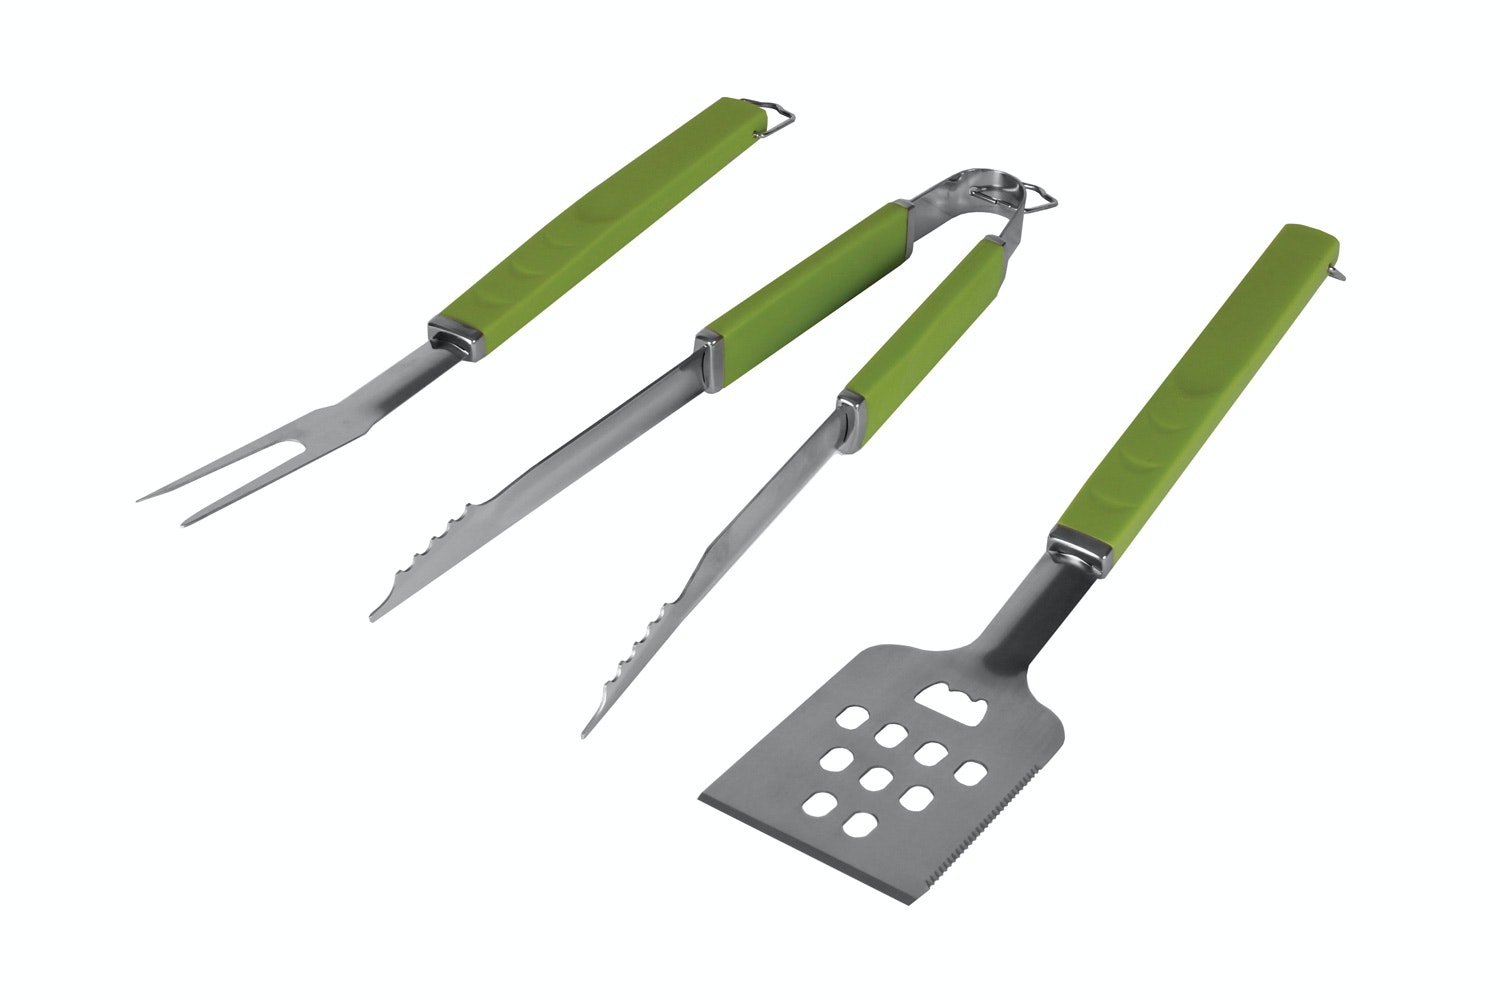 3 Piece BBQ Tool Set by Gasmate